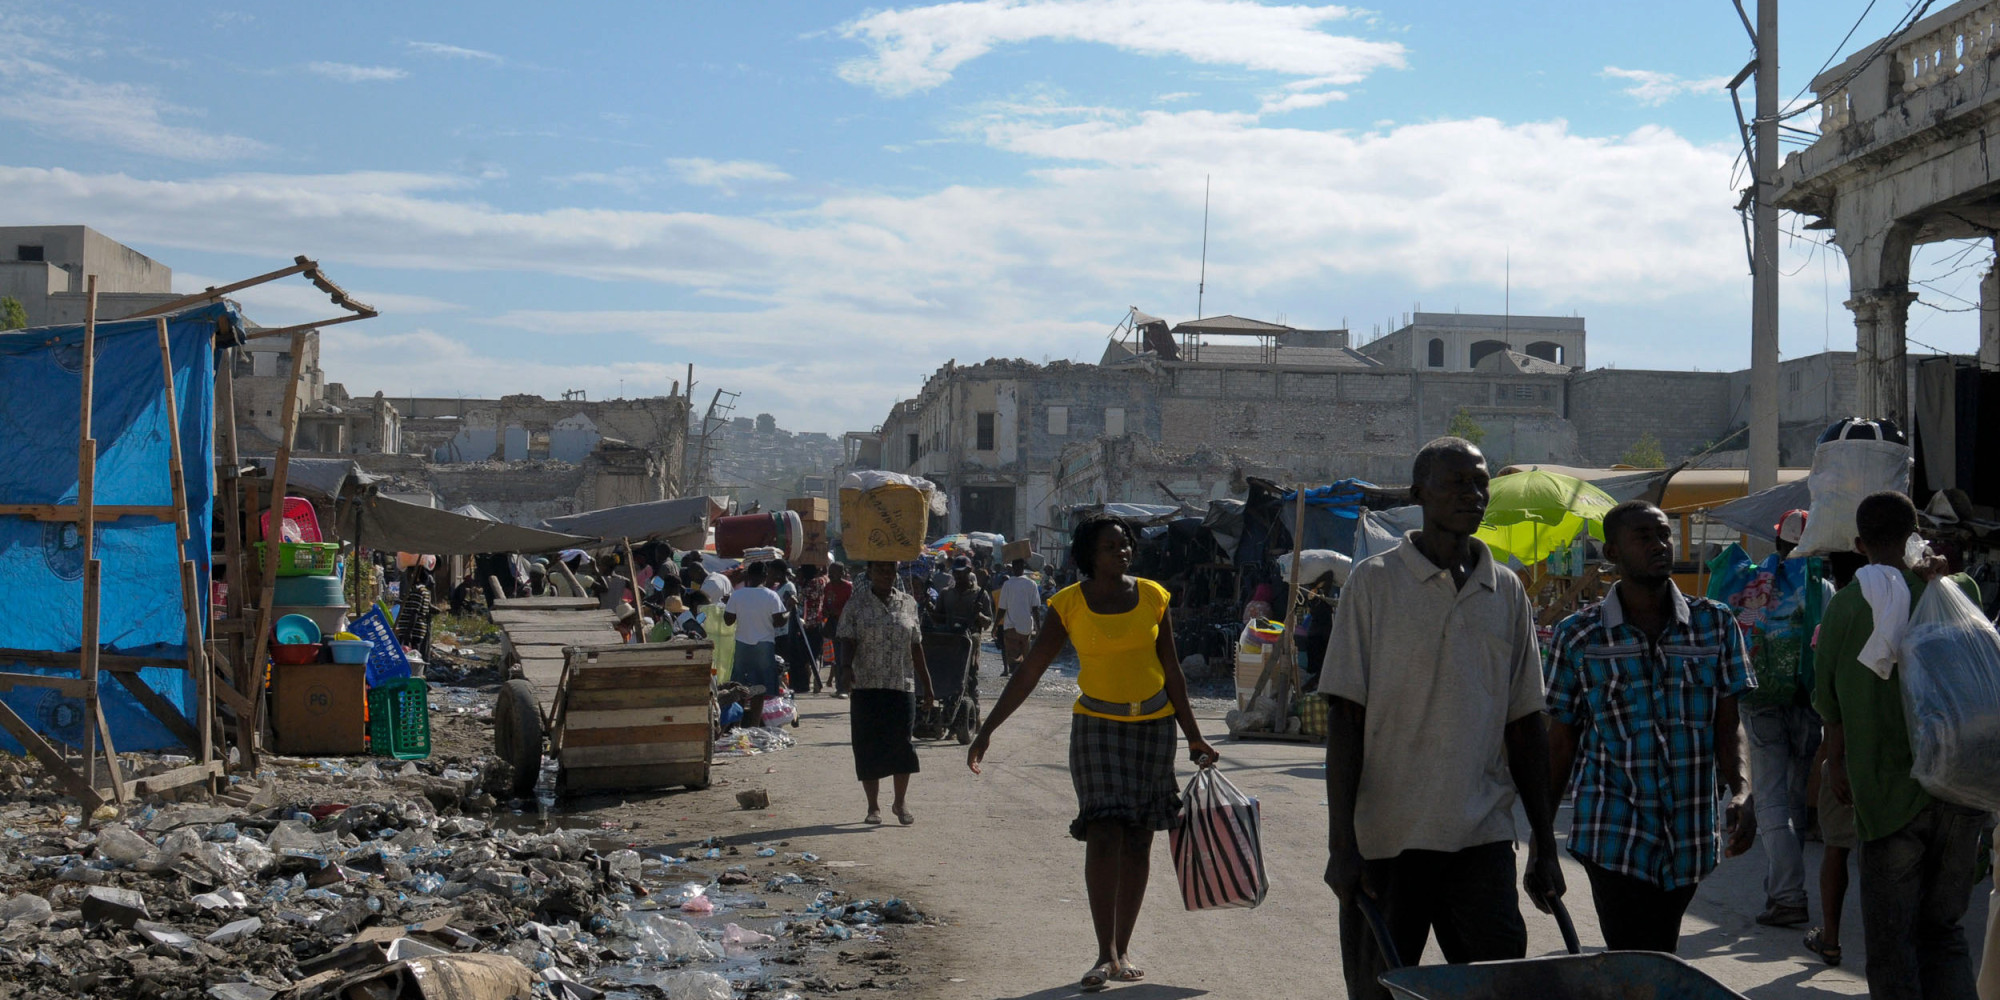 essay earthquake haiti Earthquake in haiti 2010 the earthquake in 2010 was a defining moment for haiti because it had a huge impact on them then and still does today the.